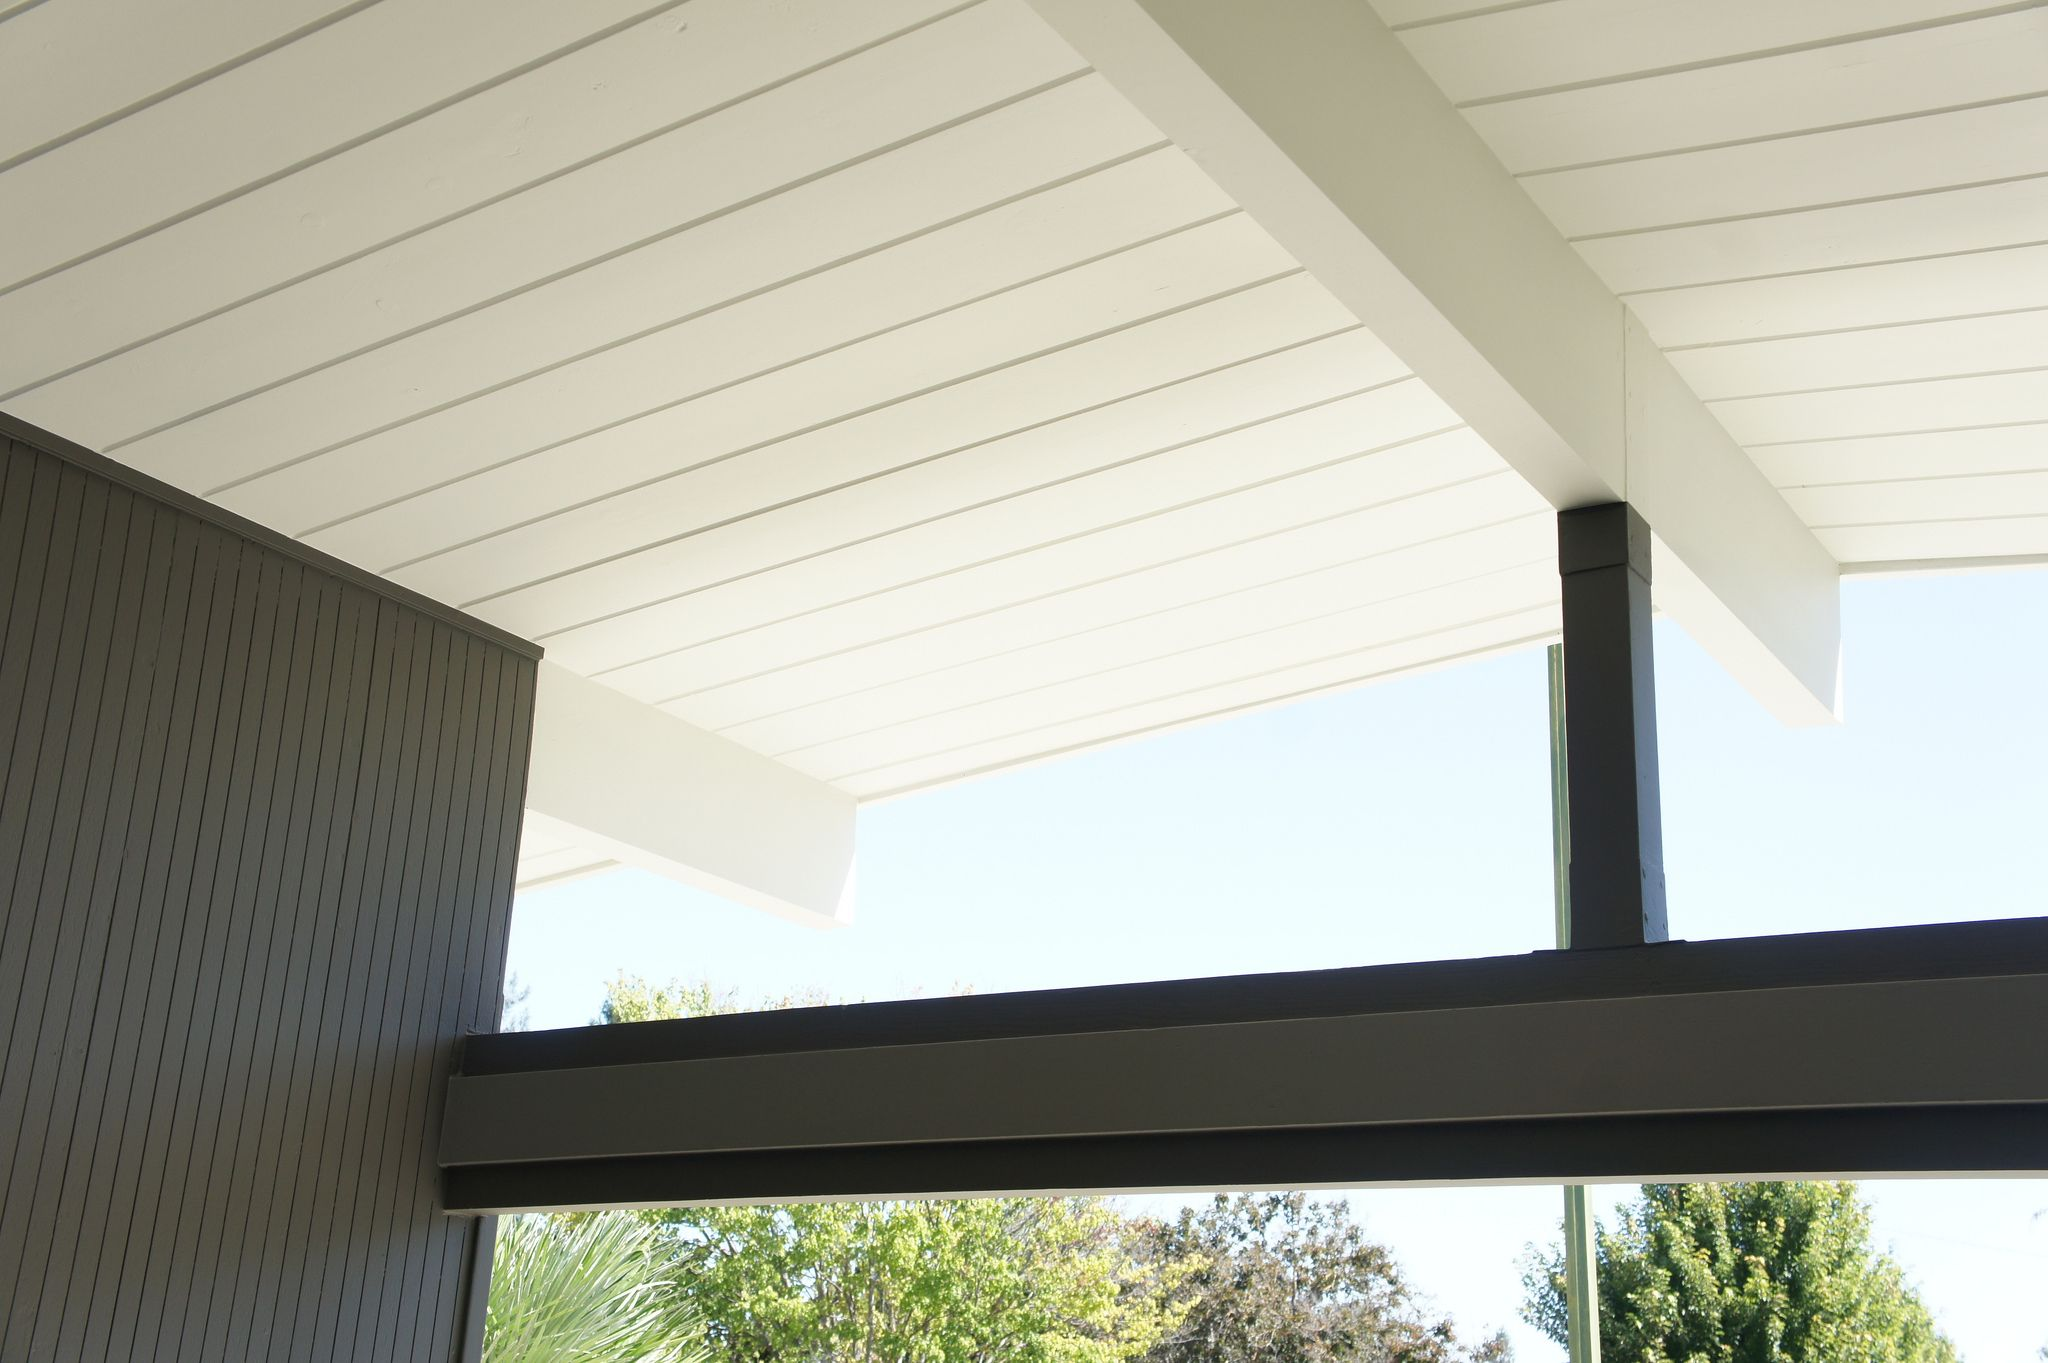 Bright soffits and beams beams